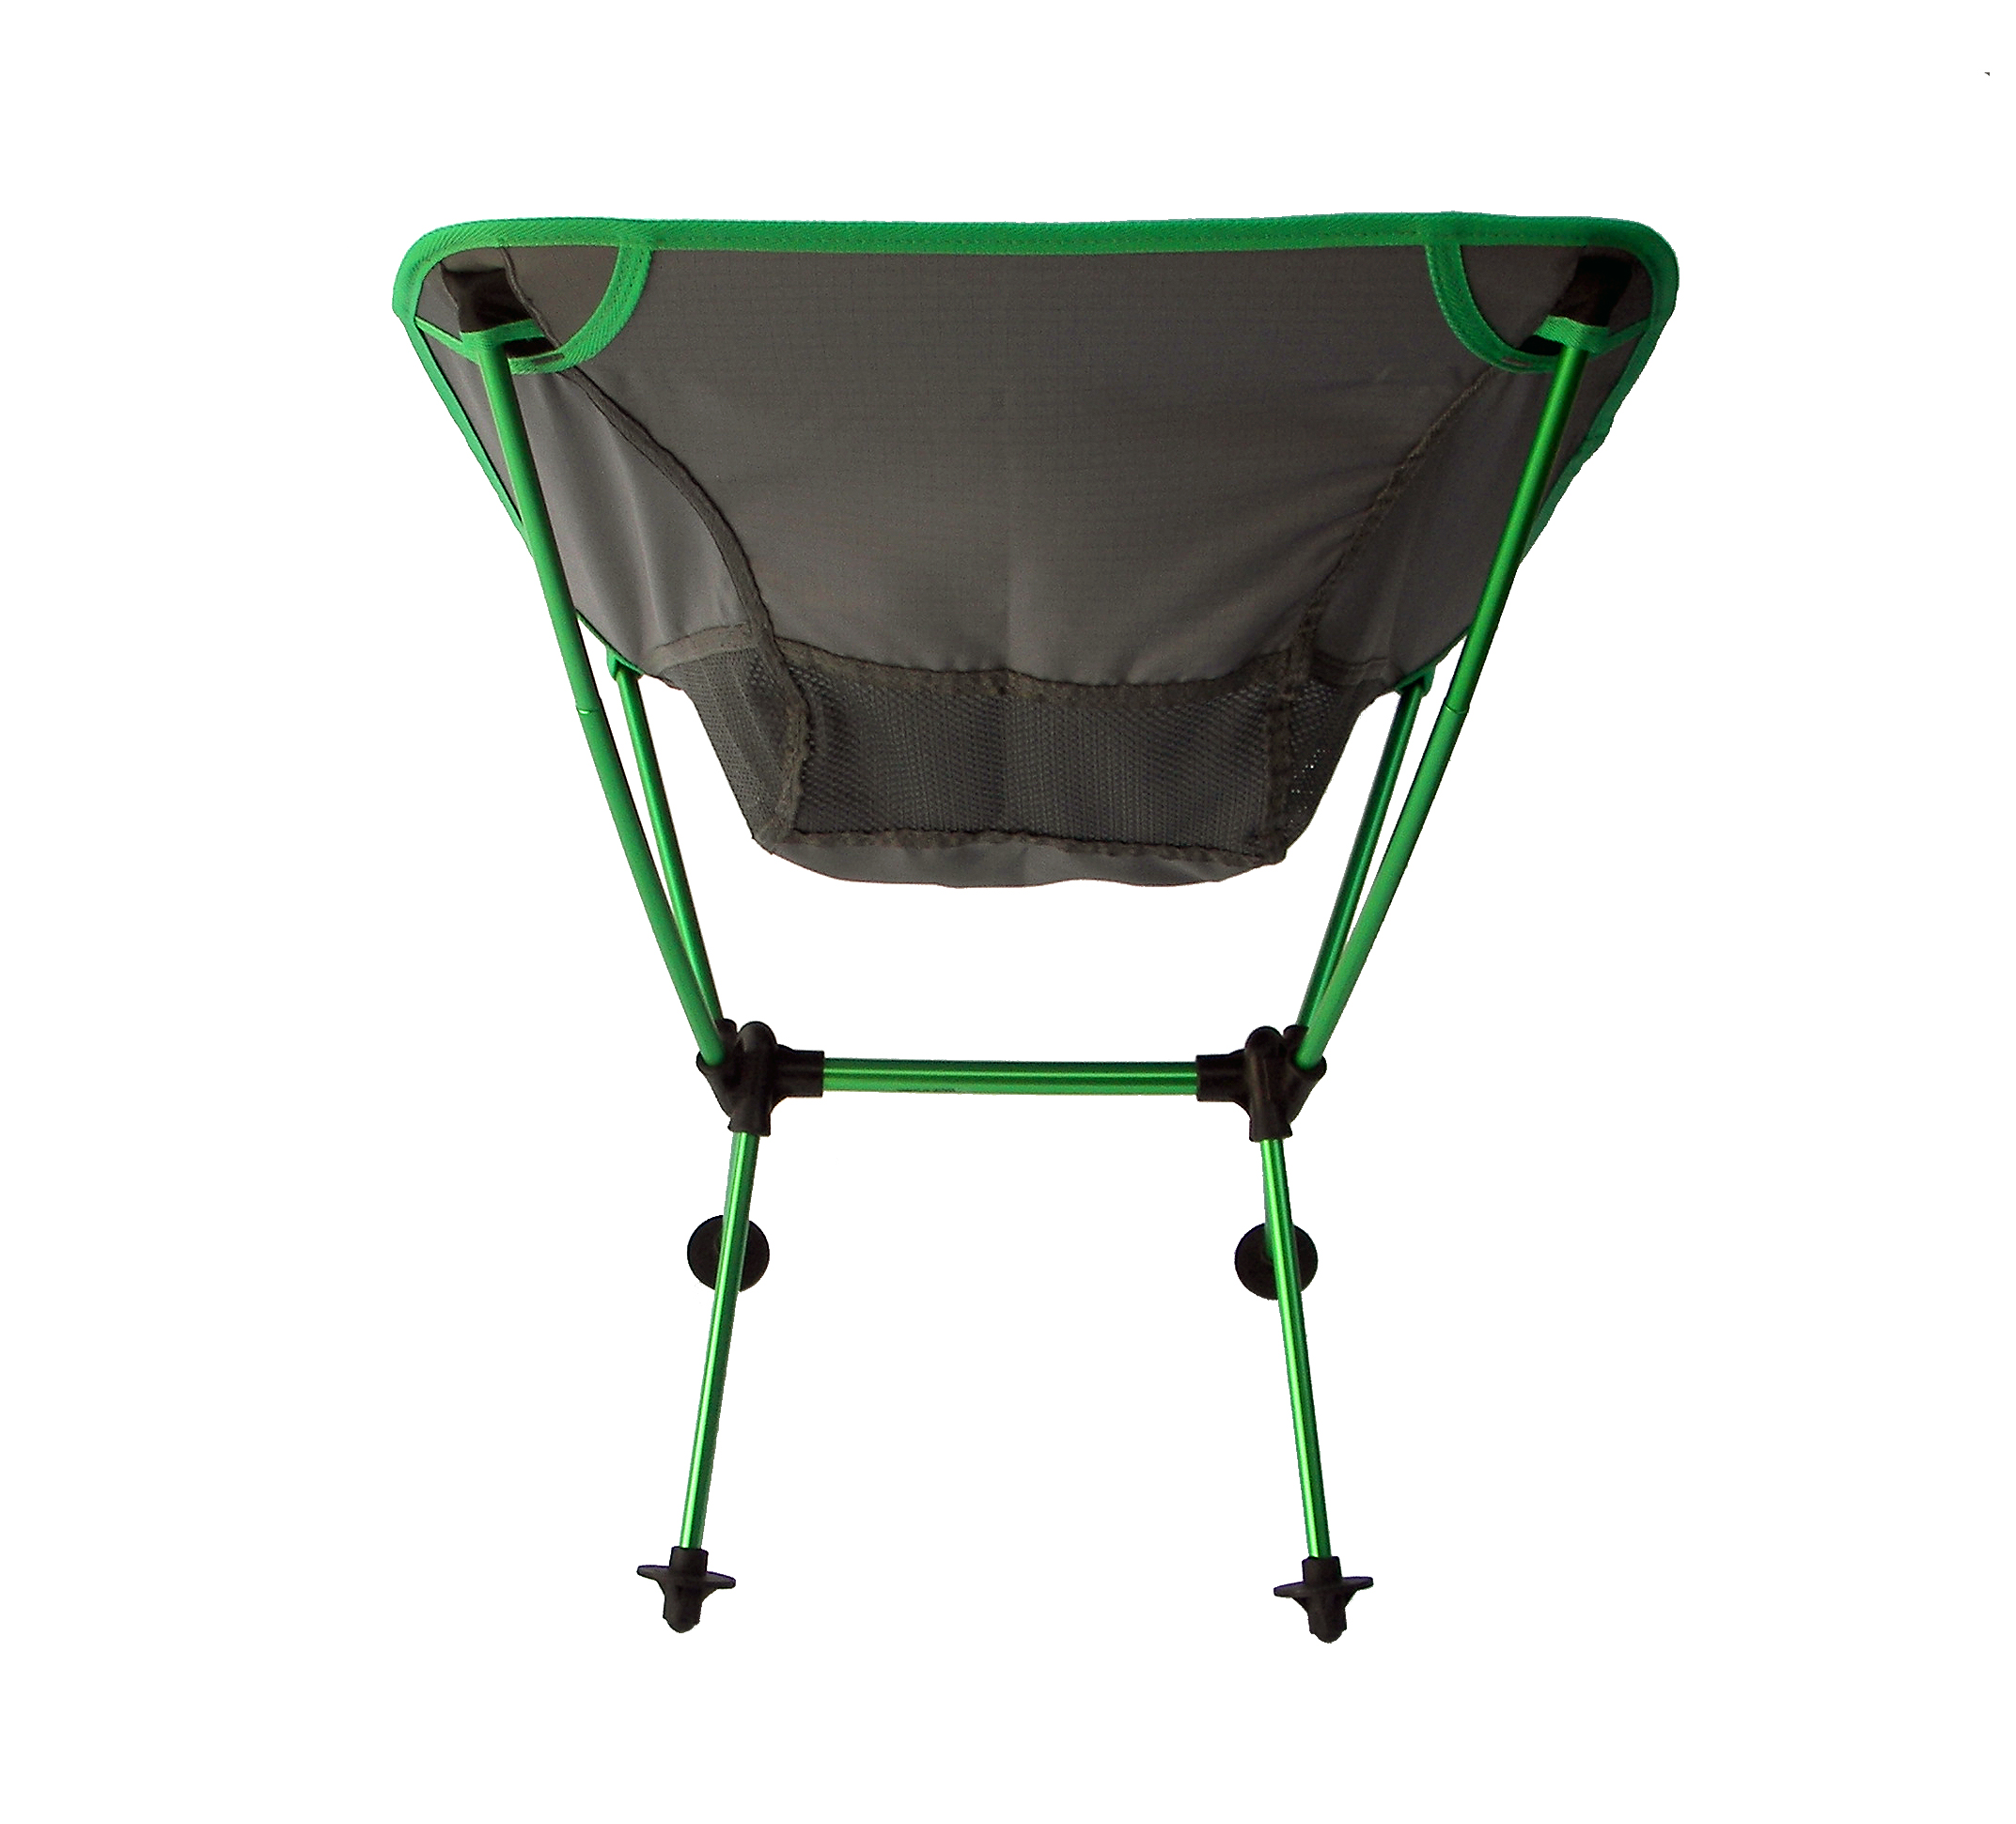 Small Camping Chair Travel Chair Joey Camping Chair Green